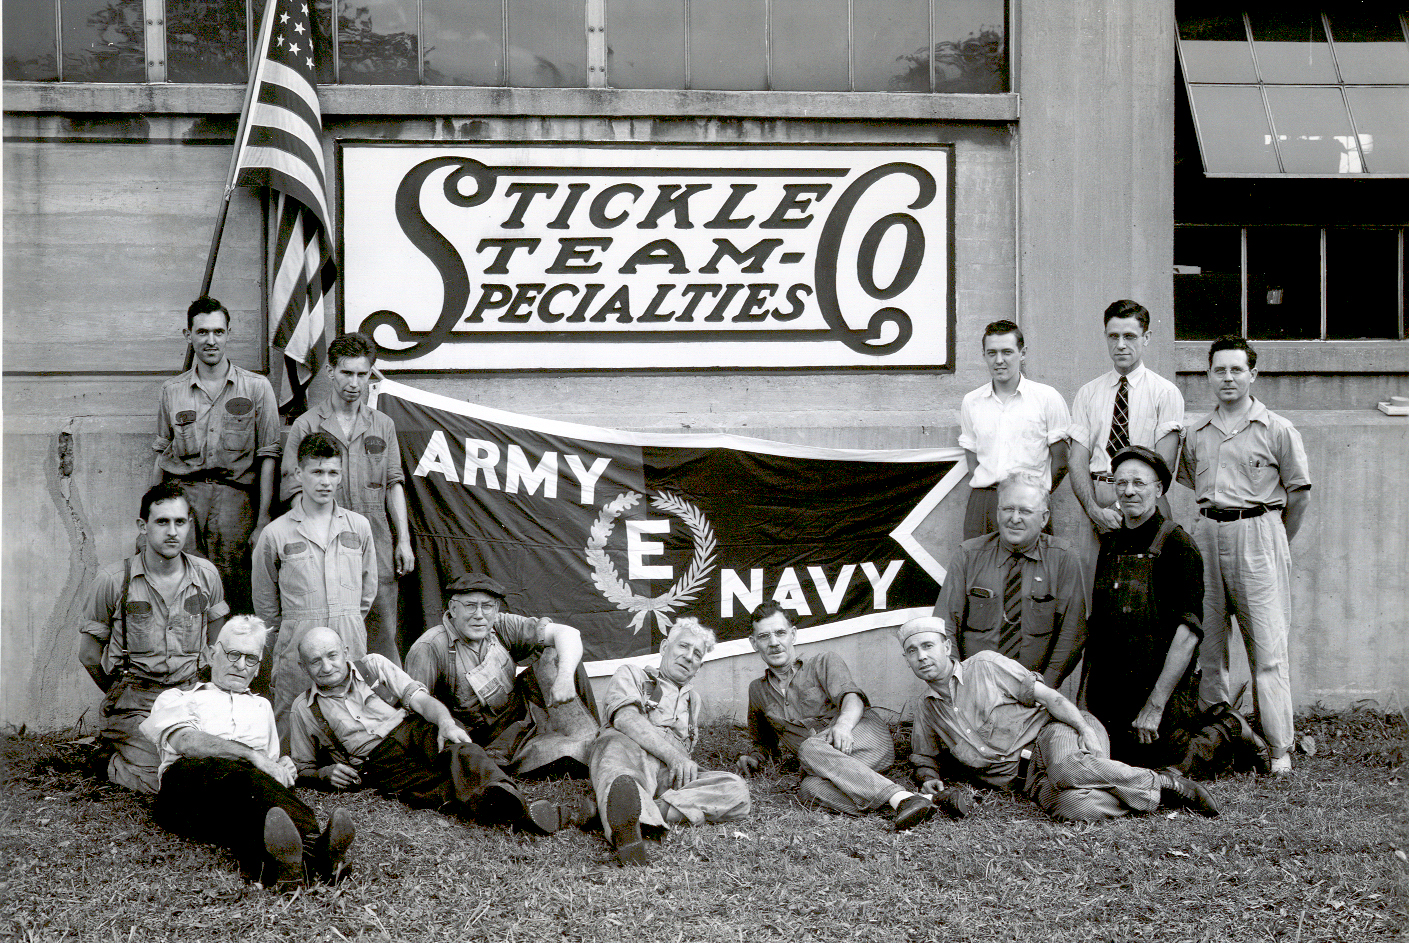 Stickel Steam 1940s